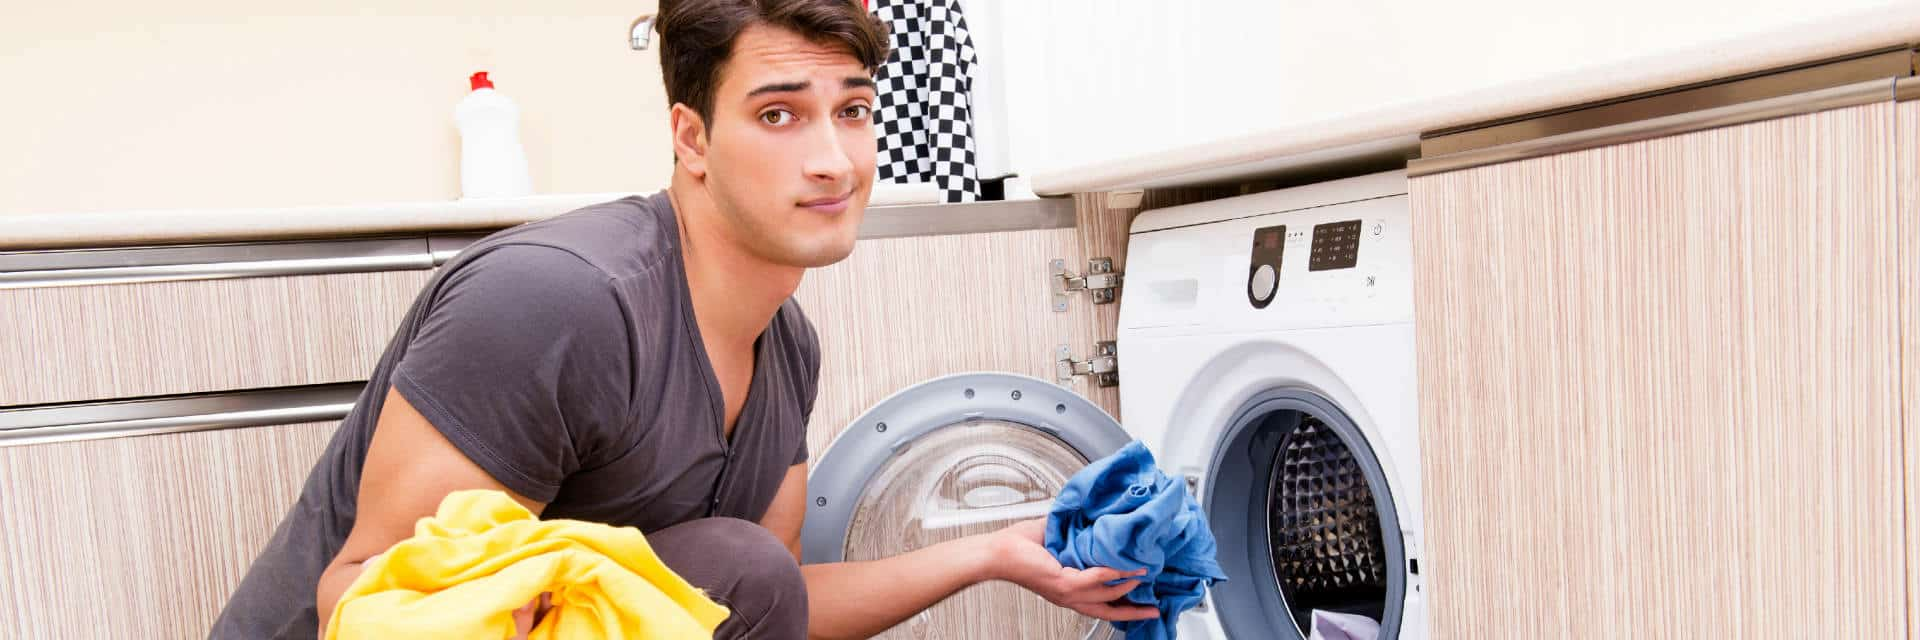 young man putting laundry in a washing machine